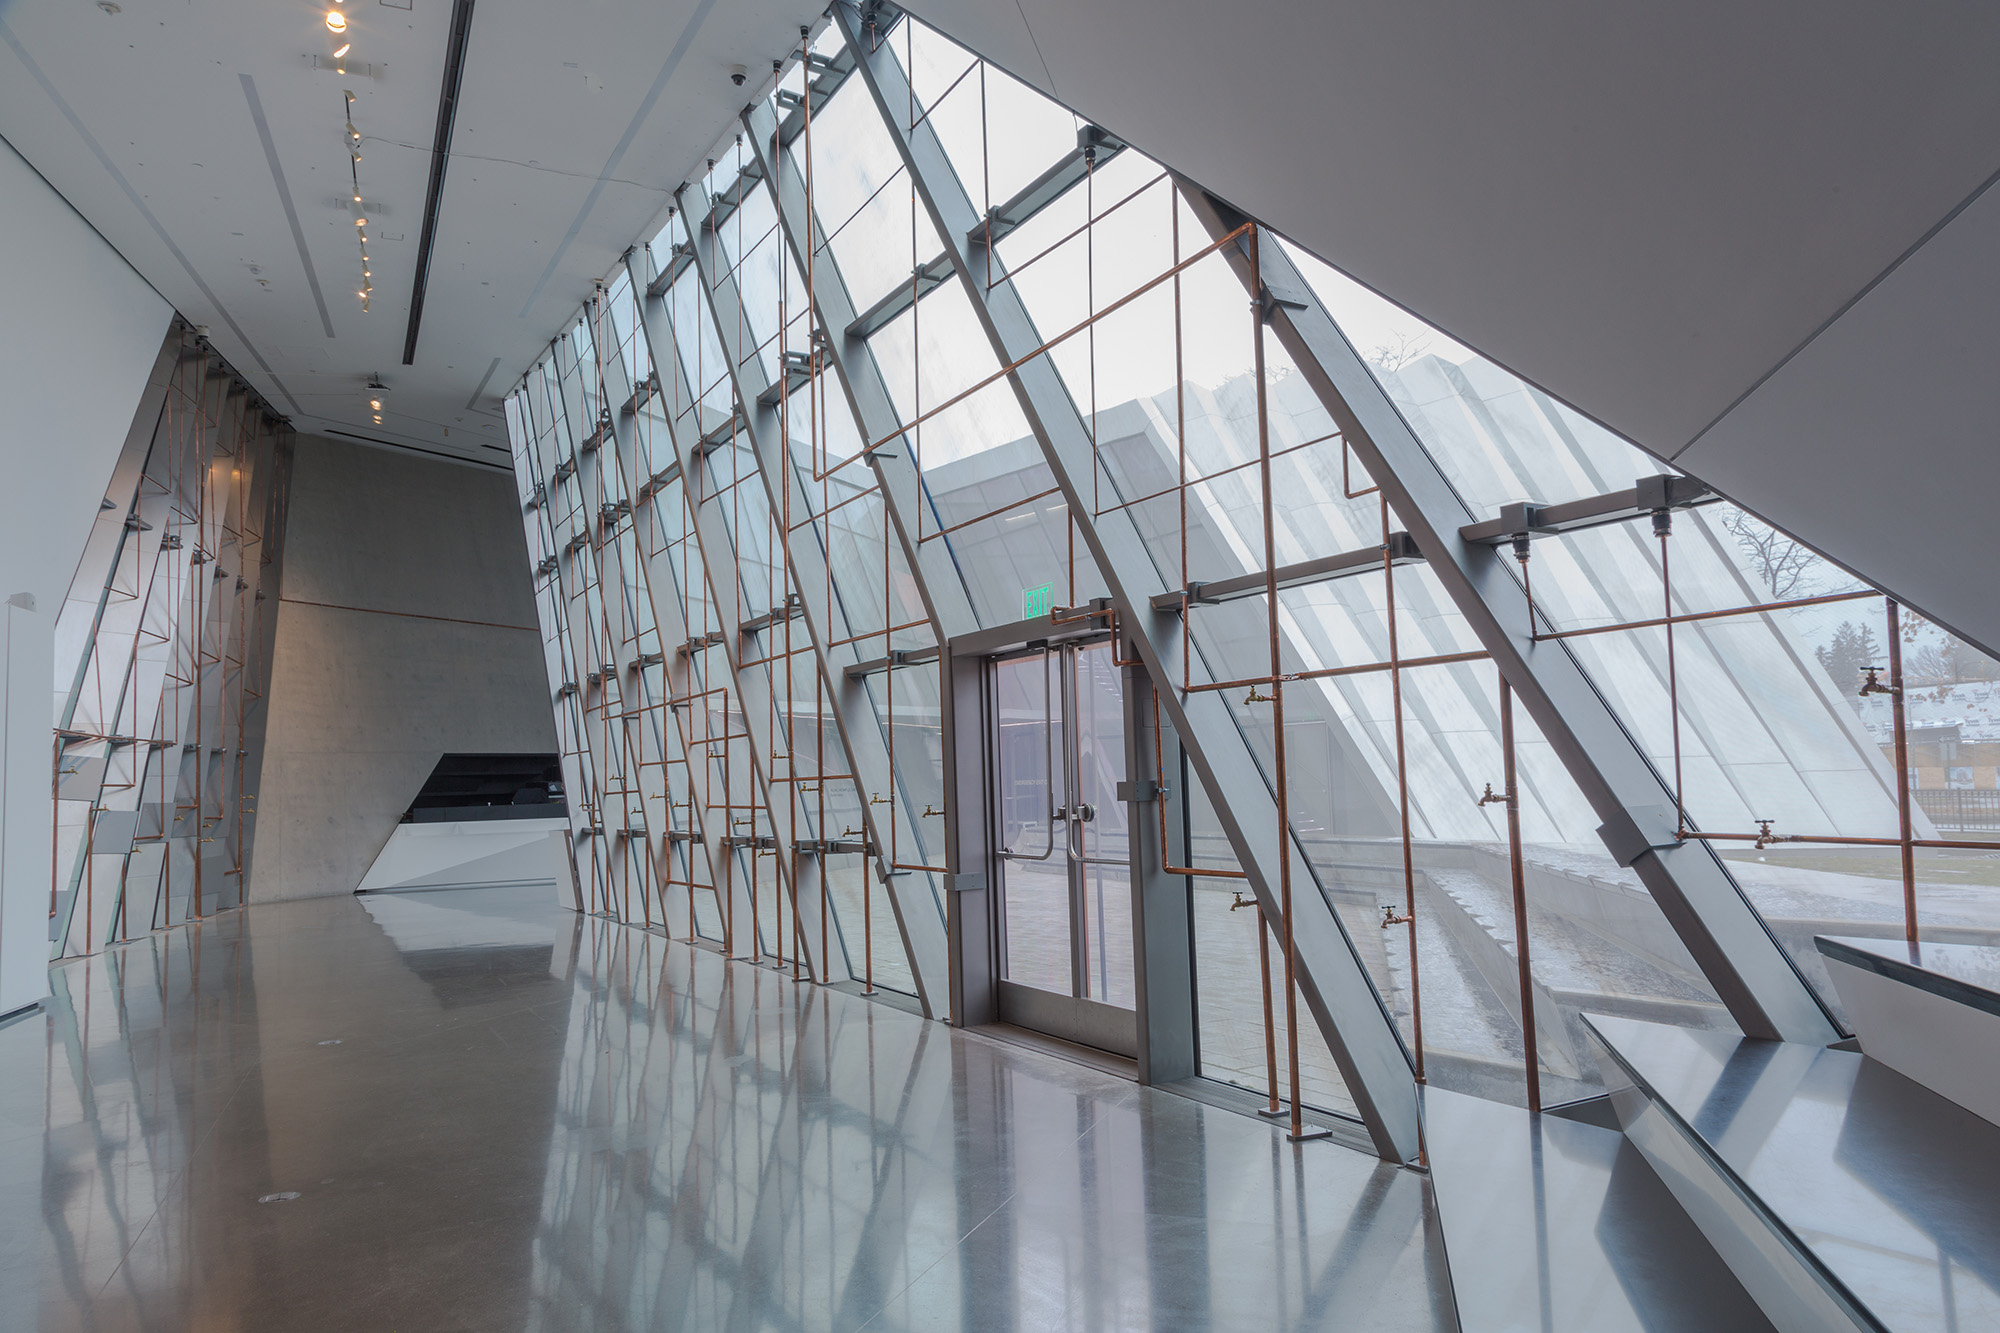 <i>Beyond Streaming: A Sound Mural for Flint</i>, installation view at the Eli and Edythe Broad Art Museum at Michigan State University, 2017. Courtesy the artist. Photo: MSU Broad